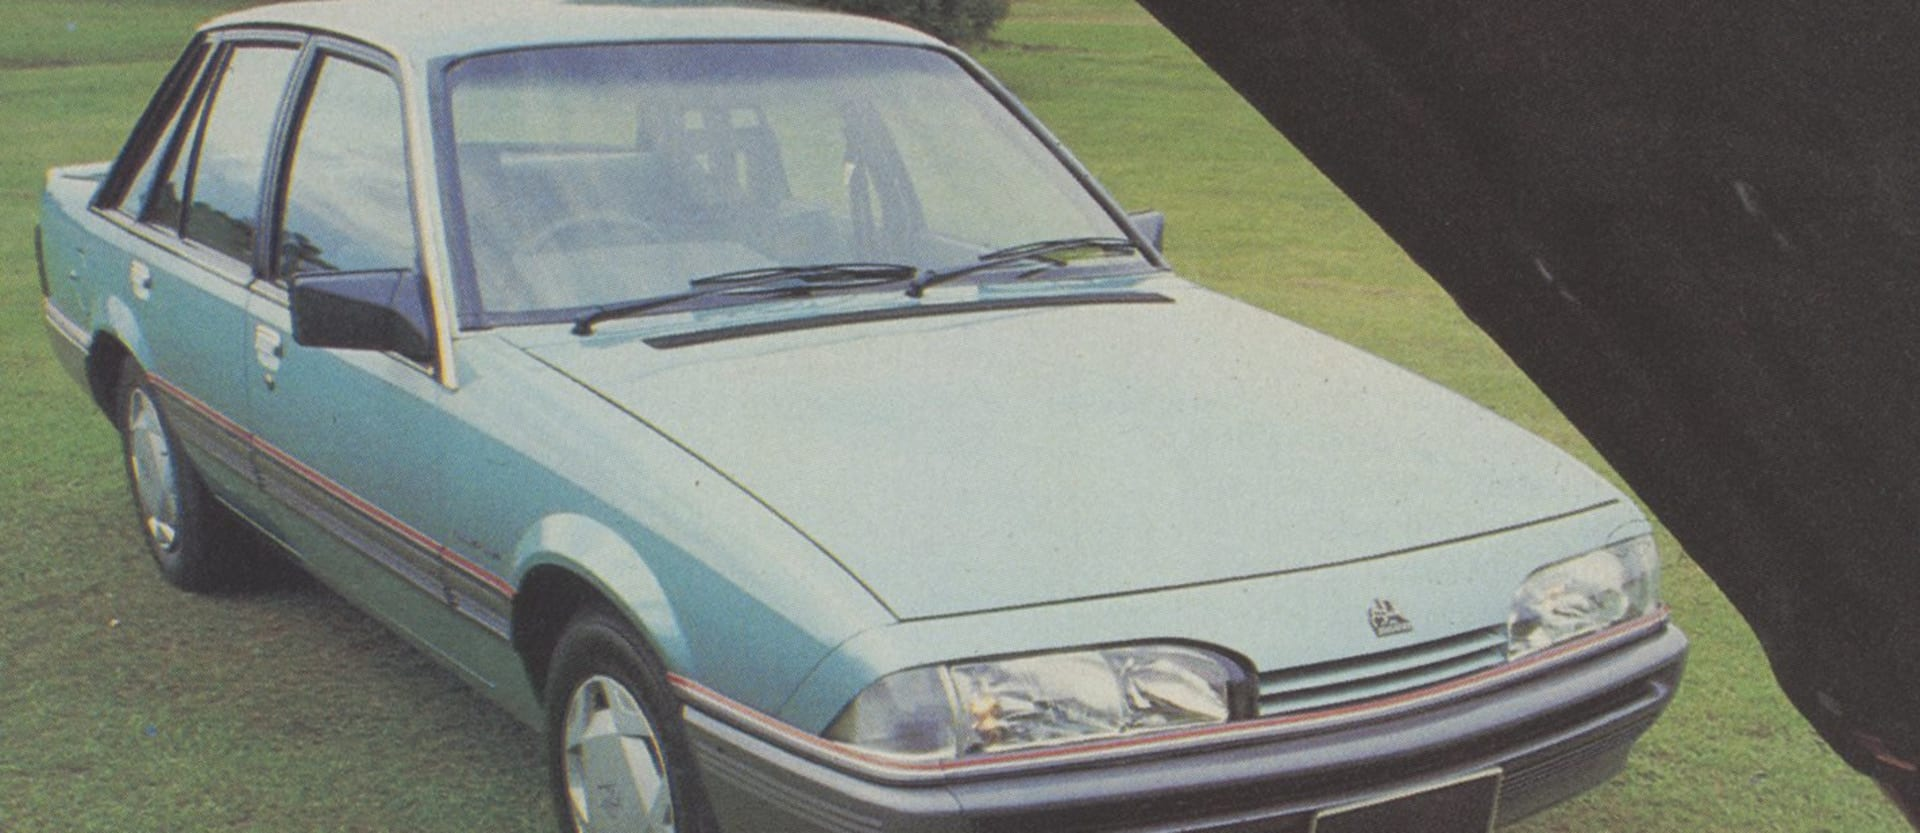 1986 Holden Commodore: No looking back